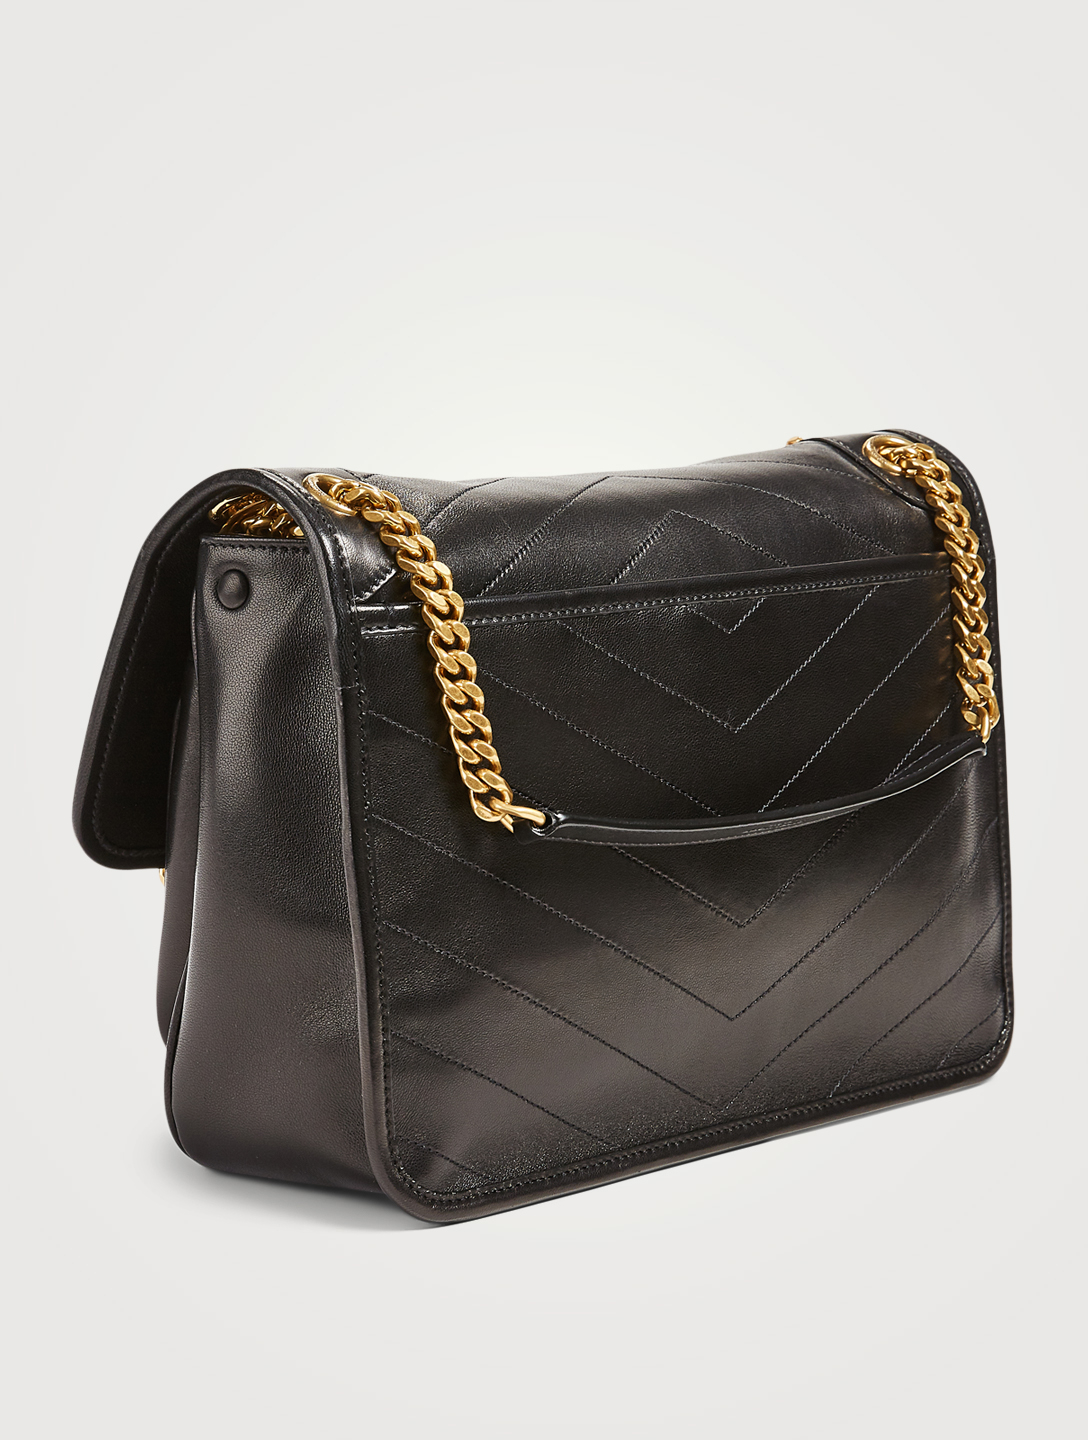 SAINT LAURENT Medium Niki YSL Monogram Leather Chain Bag Women's Black